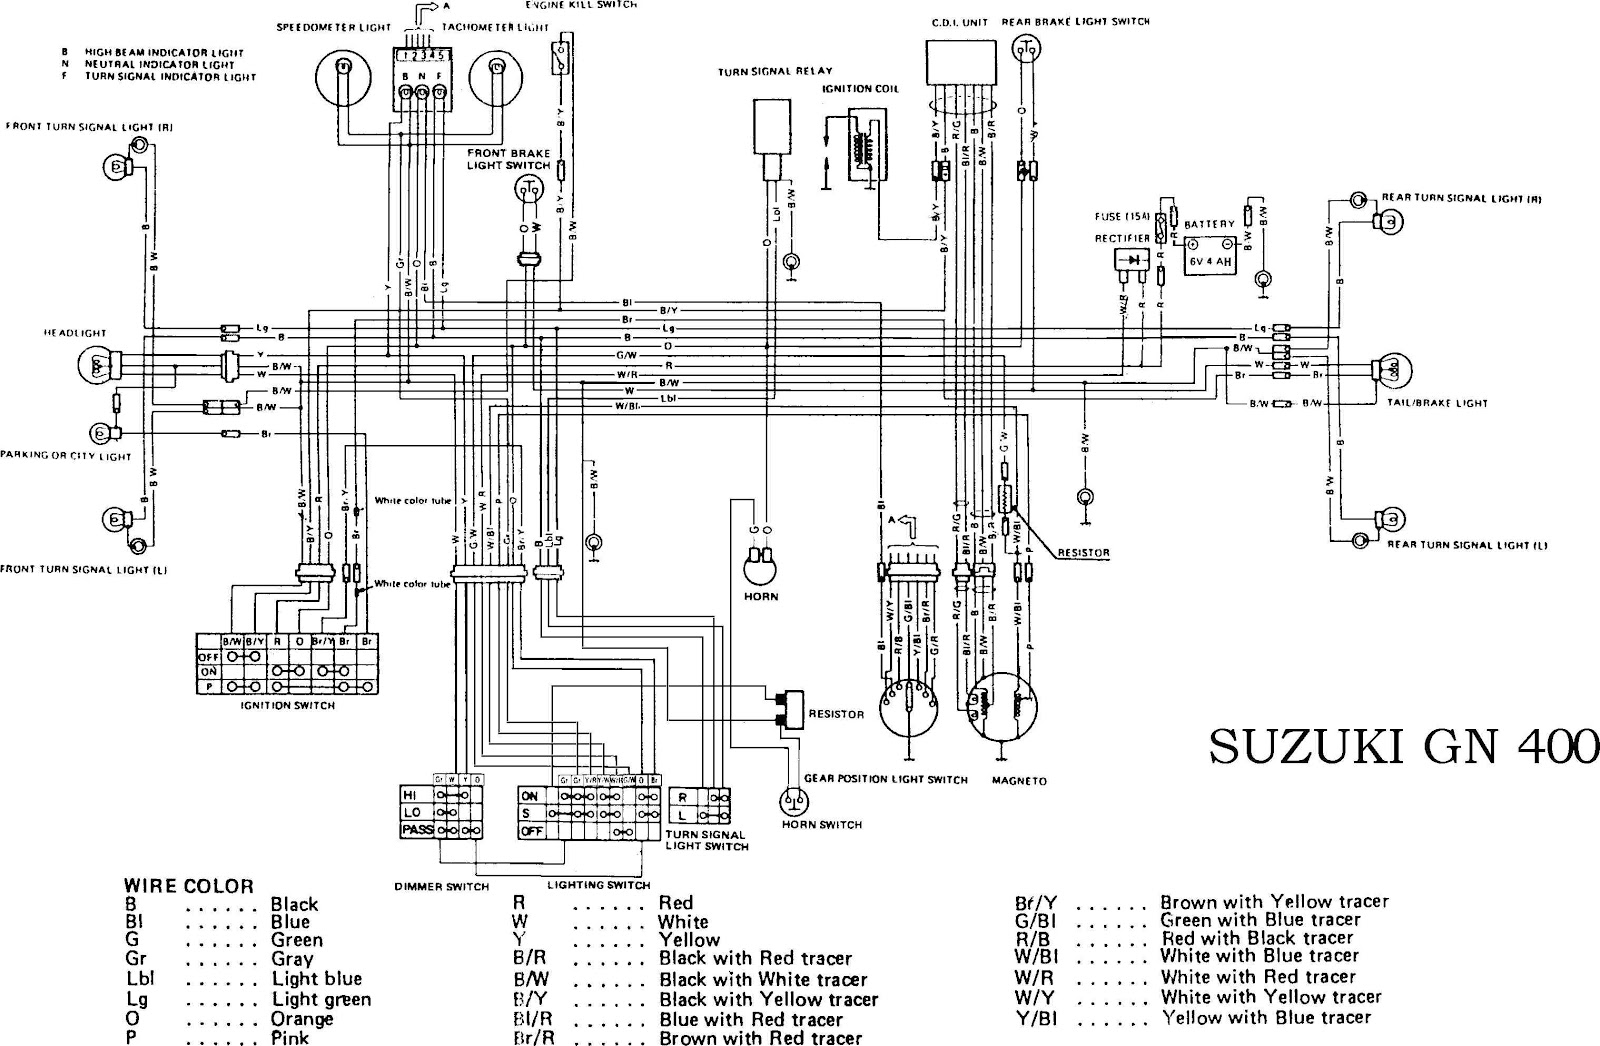 1988 Suzuki Samurai Fuse Box Location Wire Data Schema 2008 Sx4 Gsx R600 Srad Motorcycle 1998 Complete Electrical 1 Alternator Wiring Diagram